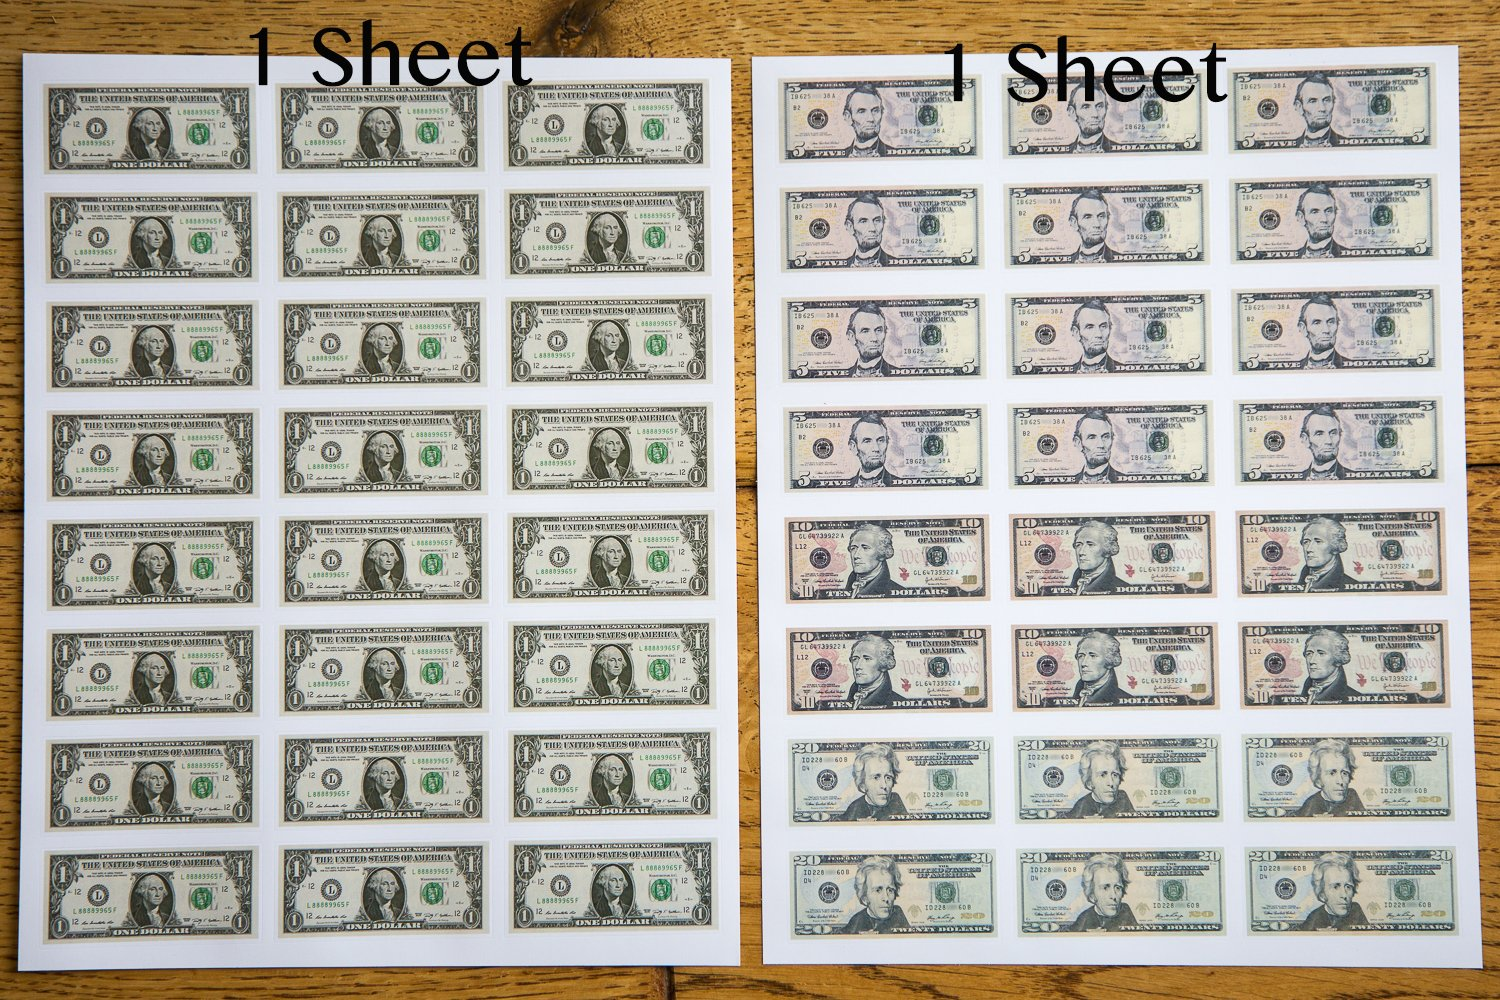 1038 Pieces U.S. Coin & Currency Stickers | For Classroom & Home Use | Extra Strong Adhesive | Realistic Size | 14 Total Sheets | By PureBloom Products by PureBloom Products (Image #9)